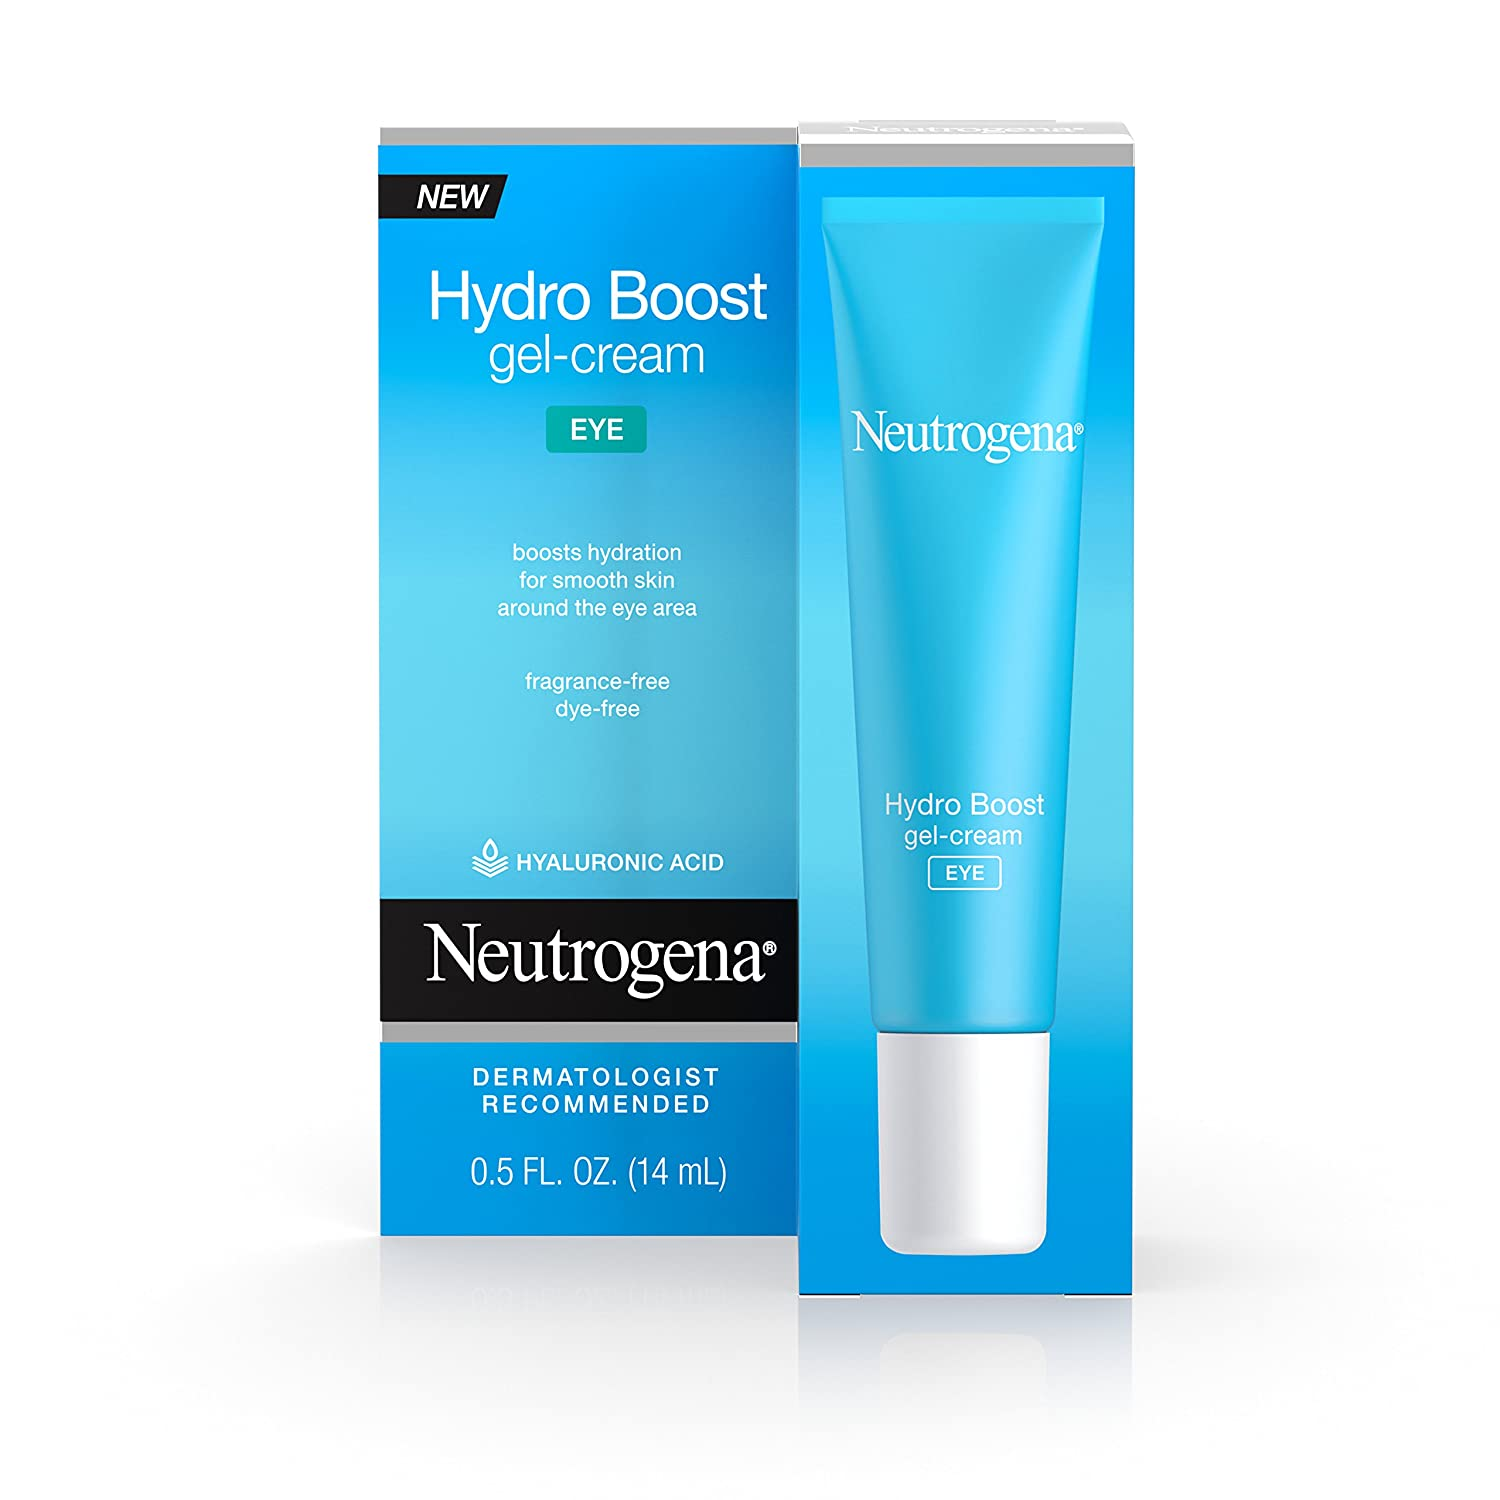 4. Neutrogena Hydro Boost Eye Gel-Cream